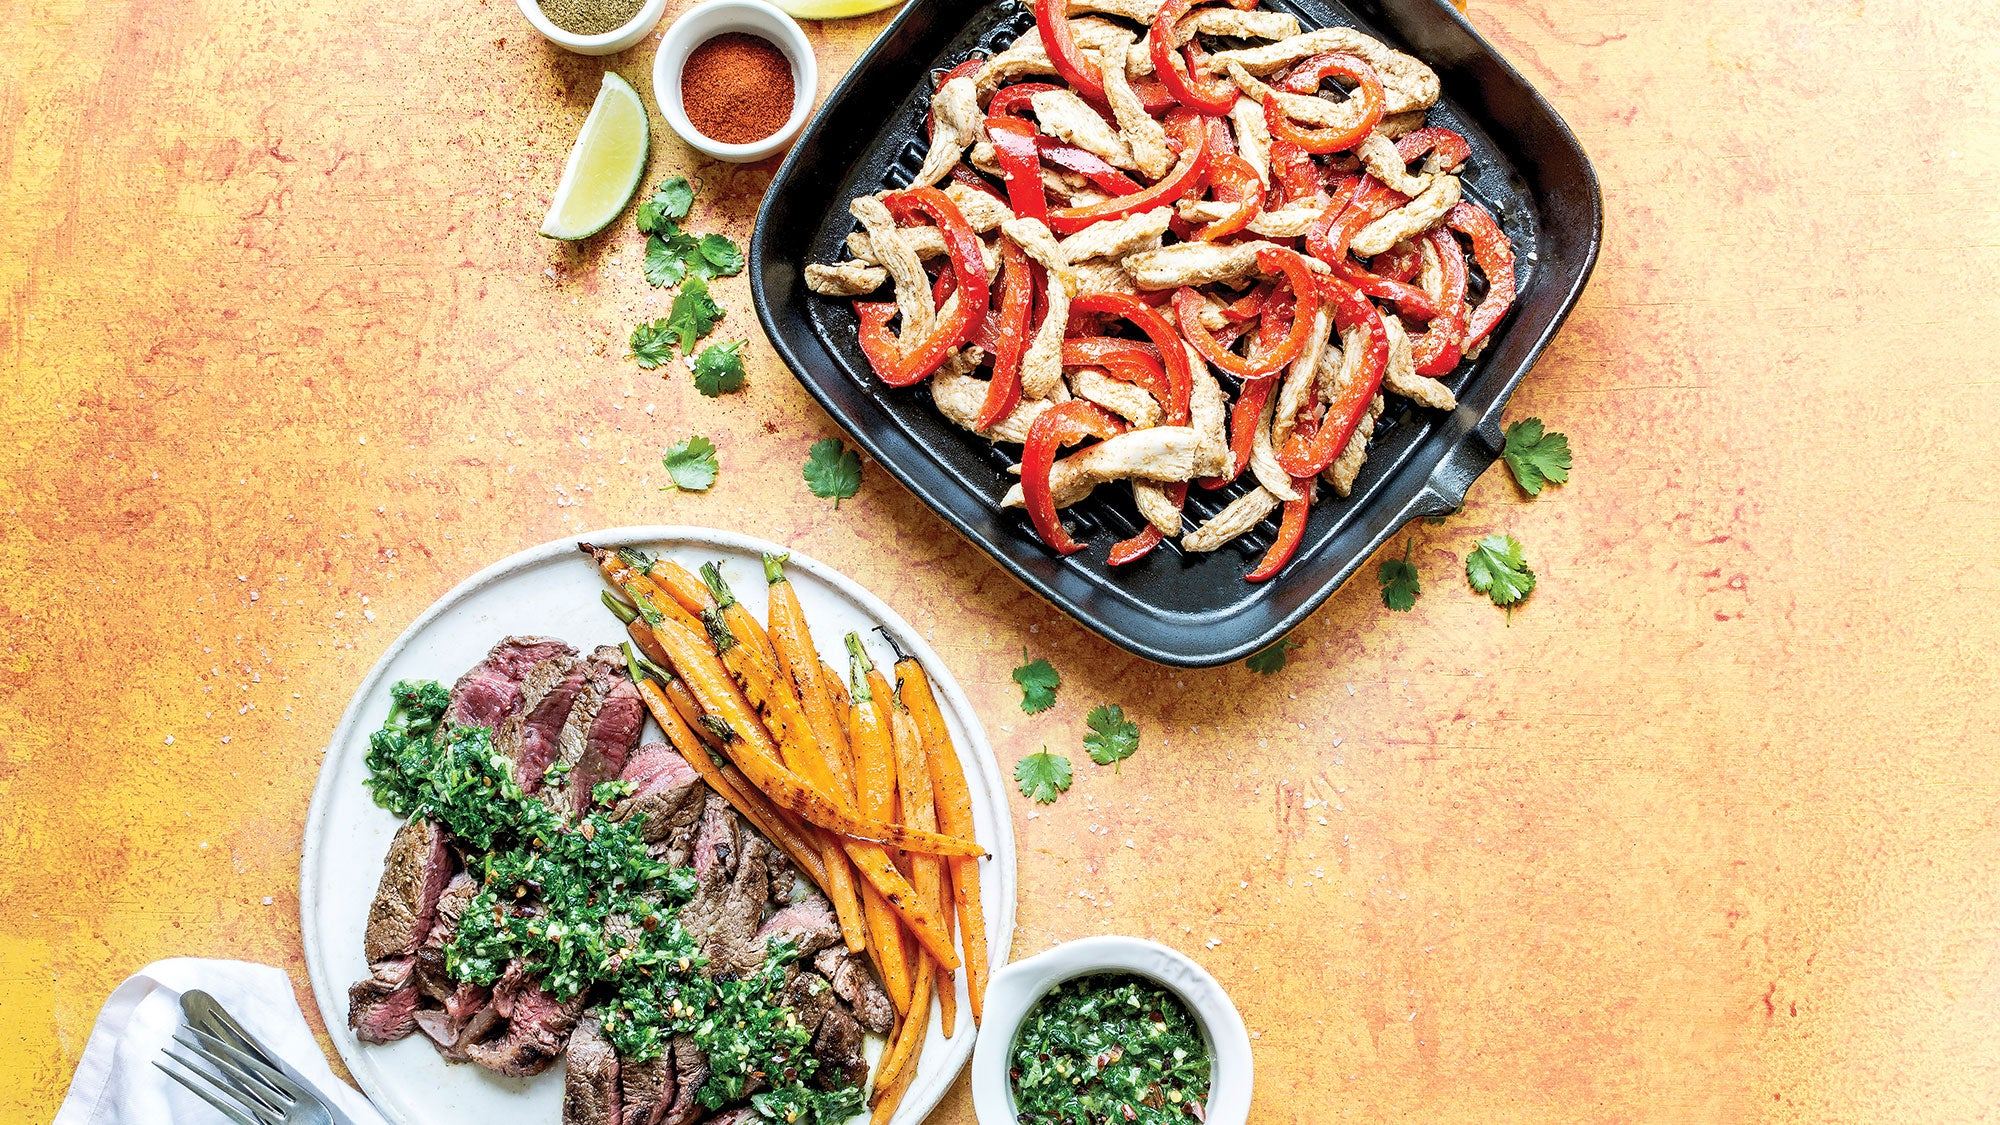 Flank Steak with Chimichurri Sauce & Roasted Carrots and Spicy Chicken Fajitas recipes